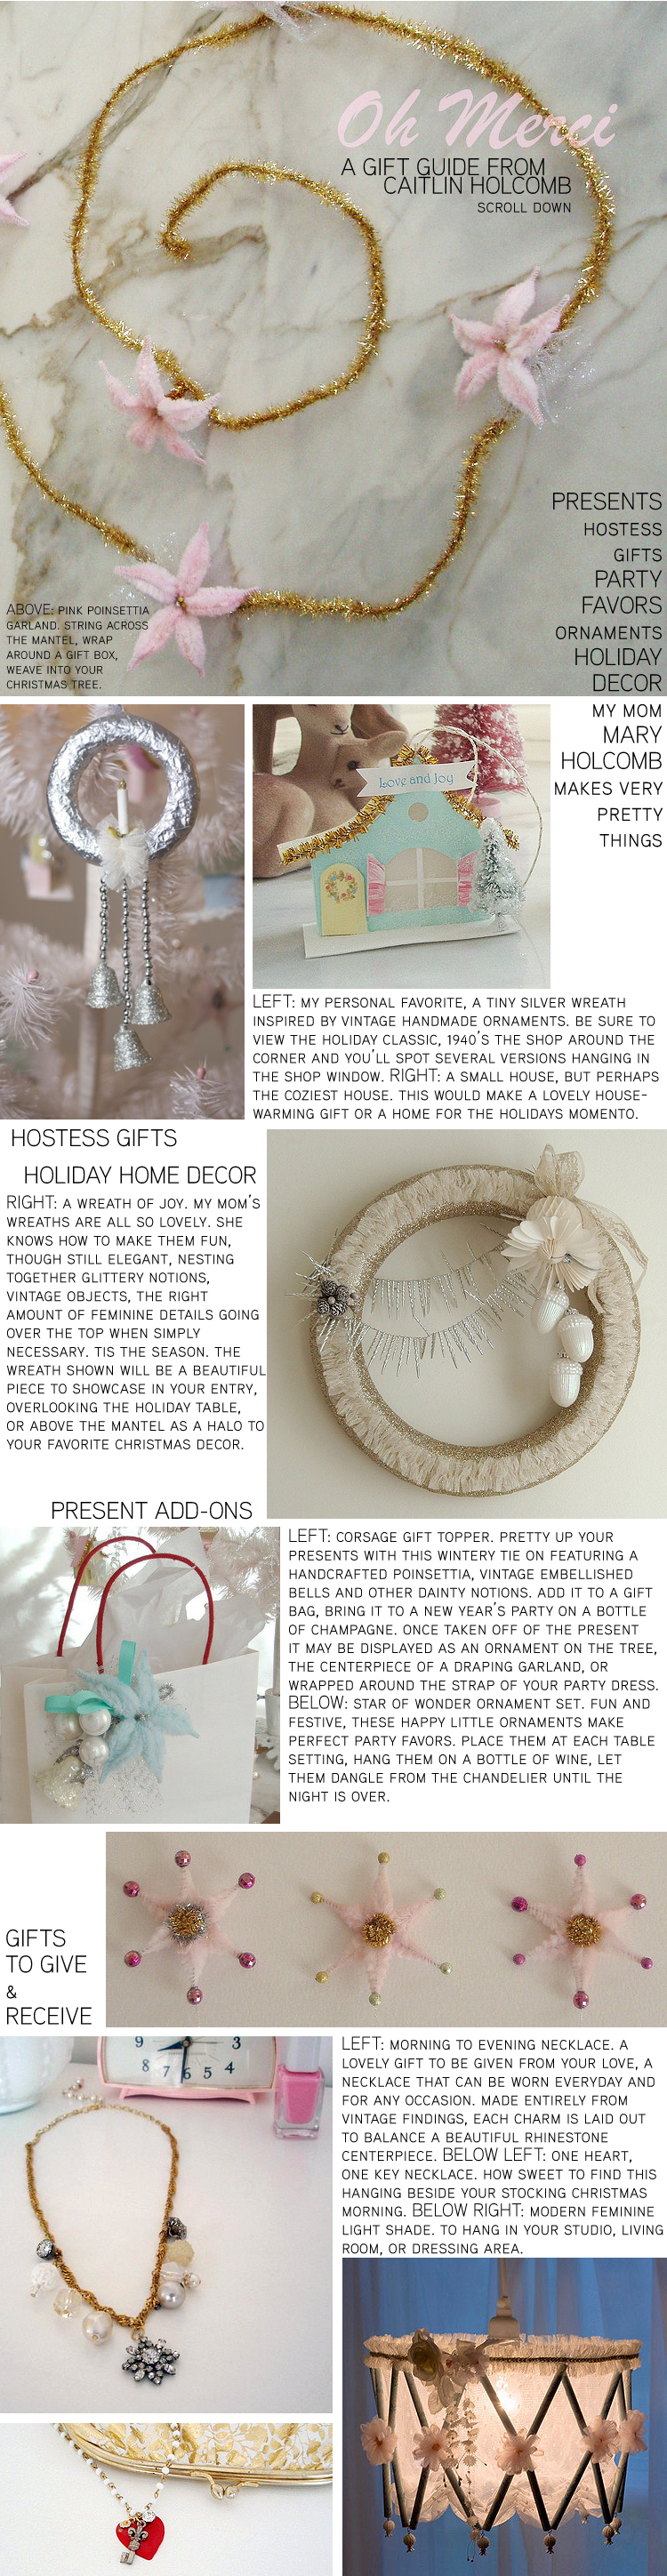 A Gift Guide For Oh Merci